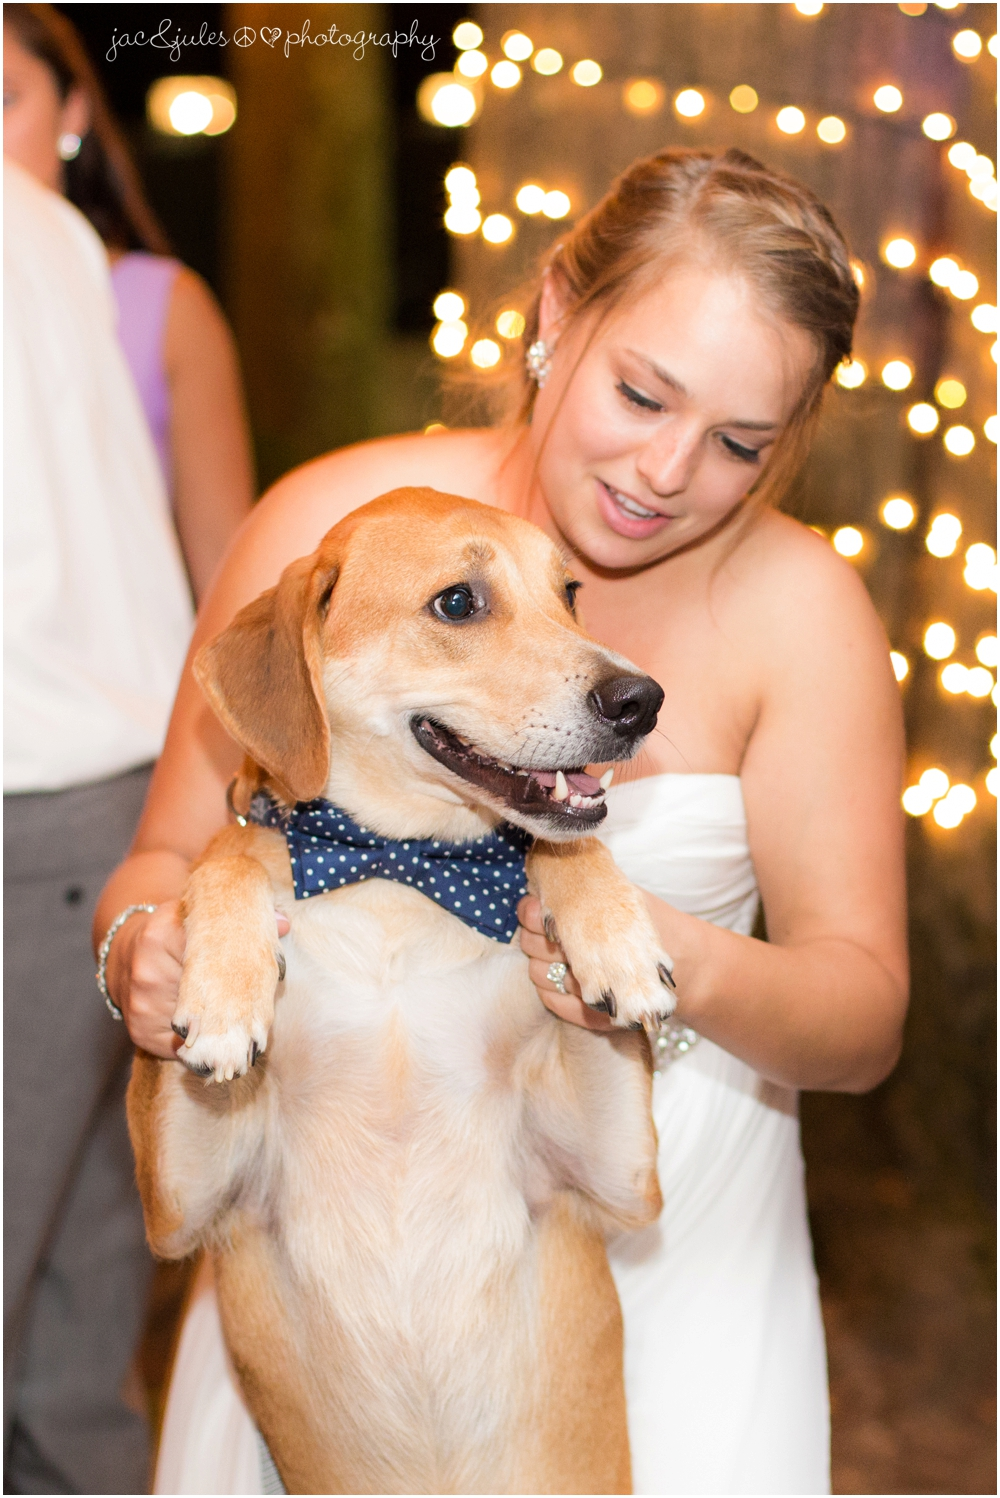 jacnjules photographs a bride with her dog at a wedding reception at drumore estate in pa